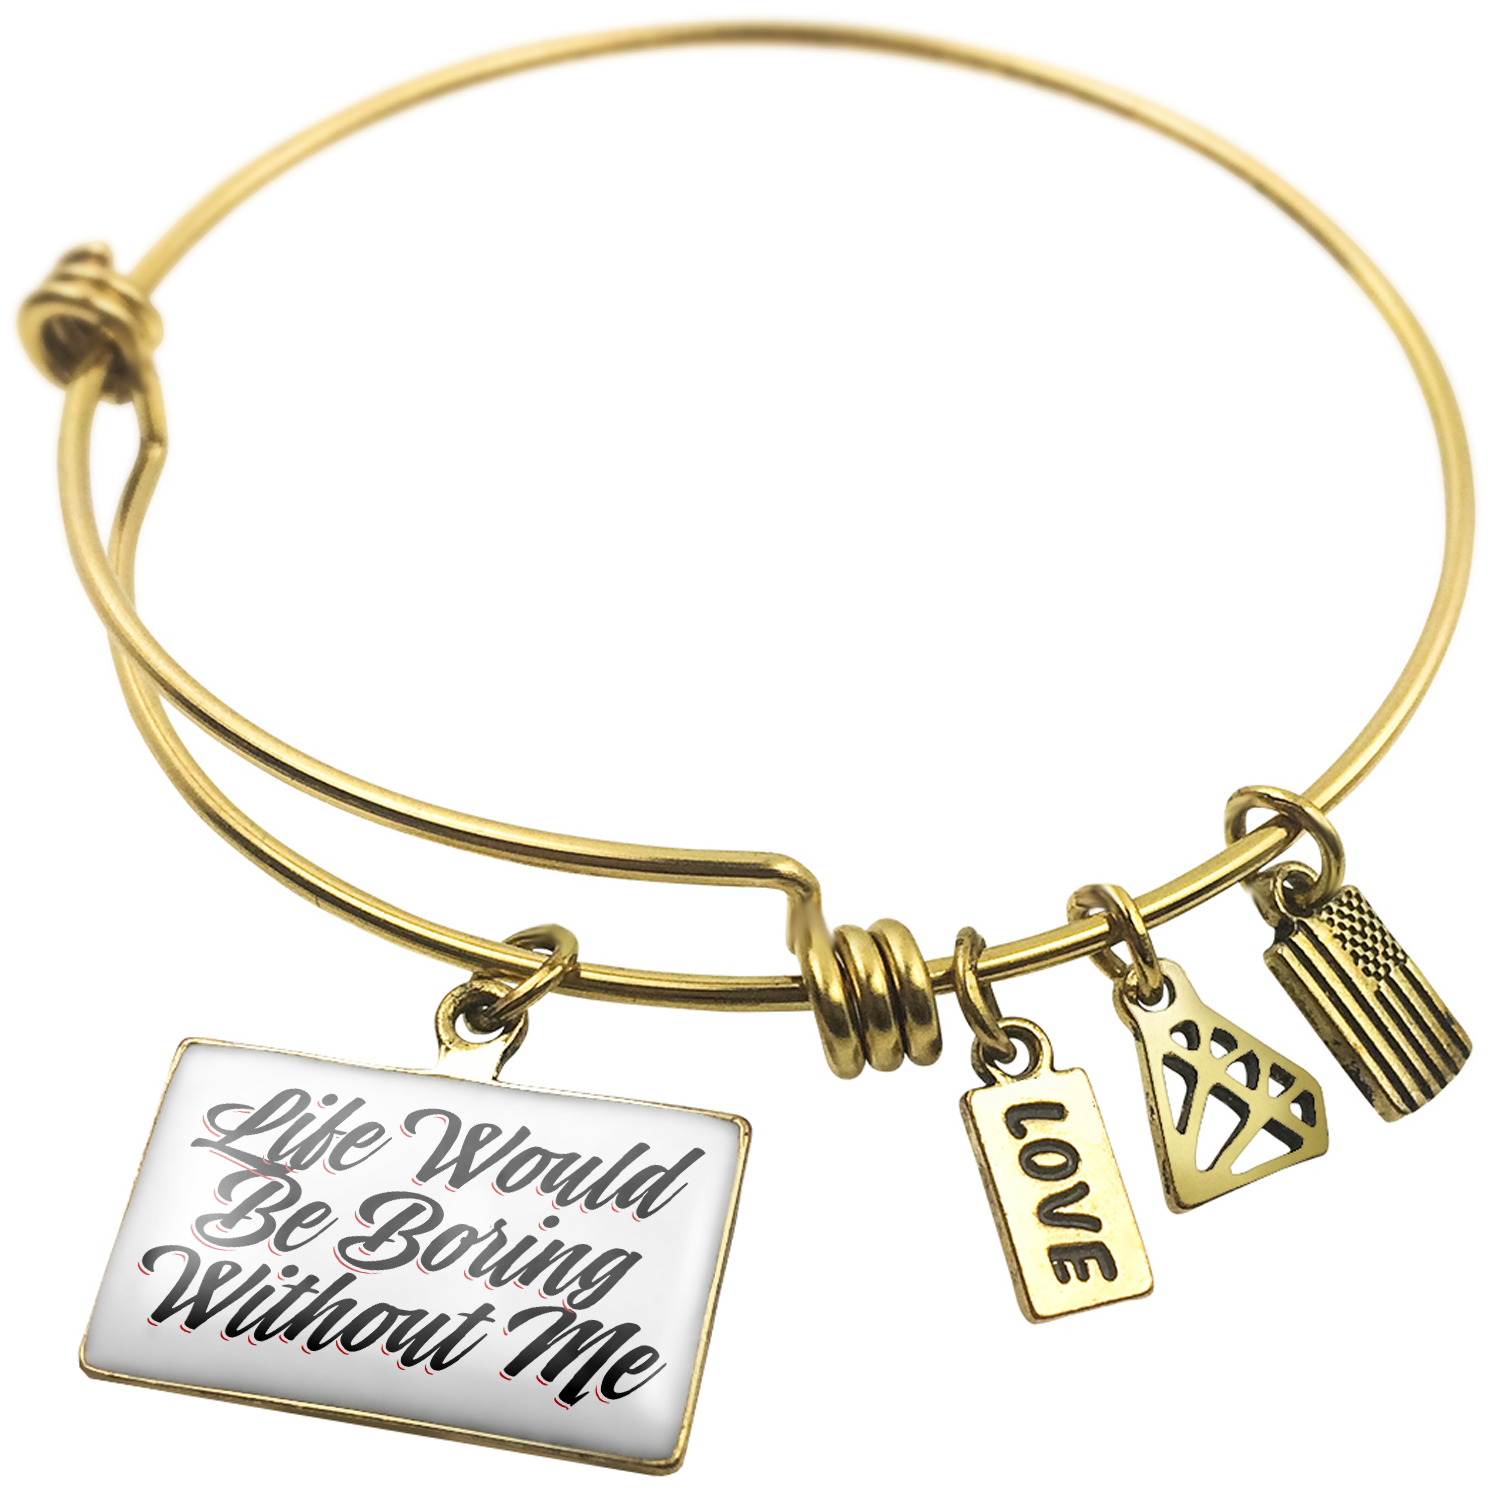 Expandable Wire Bangle Bracelet Vintage Lettering Life Would Be Boring Without Me - NEONBLOND